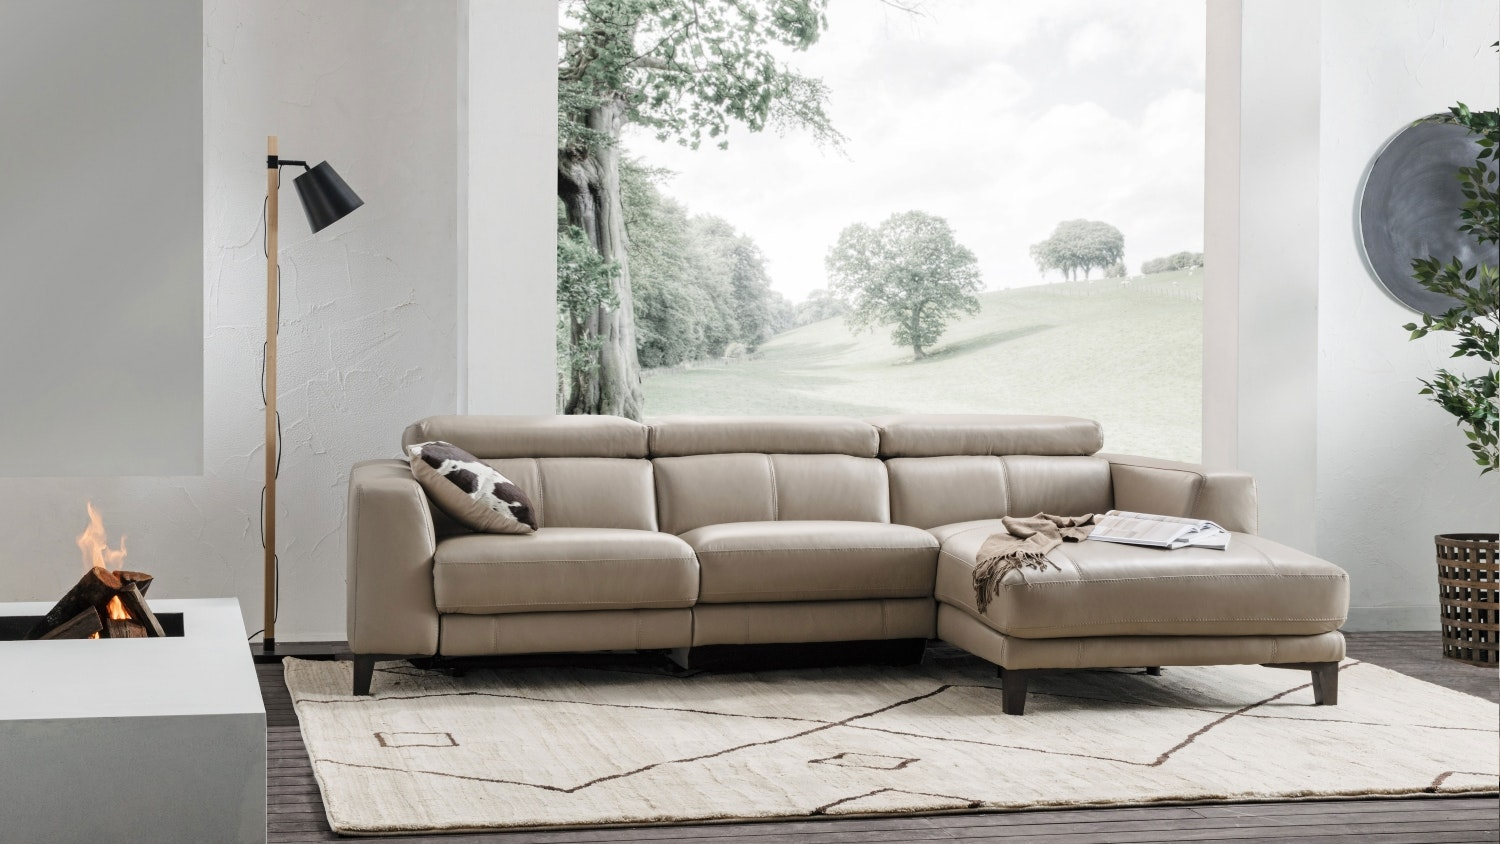 Adali 2 5 Seater Leather Sofa With Chaise Electric Reclining  ~ Sofa With Chaise And Recliner